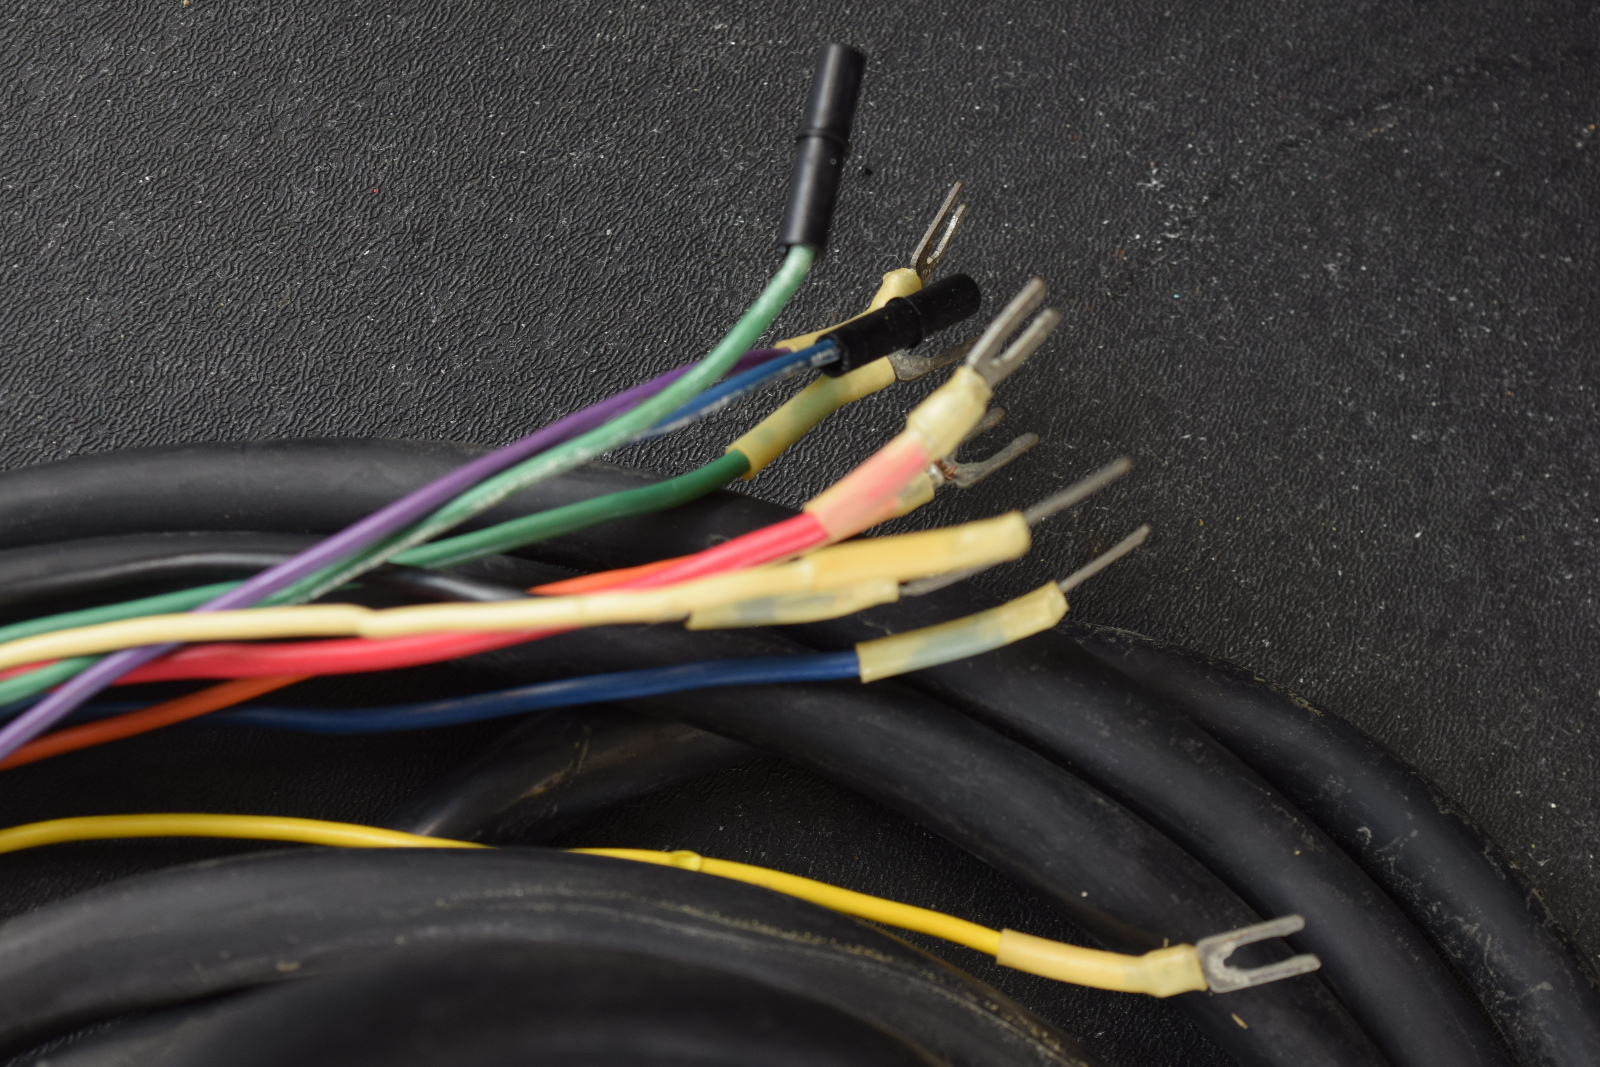 Chrysler Wiring Harness : Chrysler exterior control wiring harness